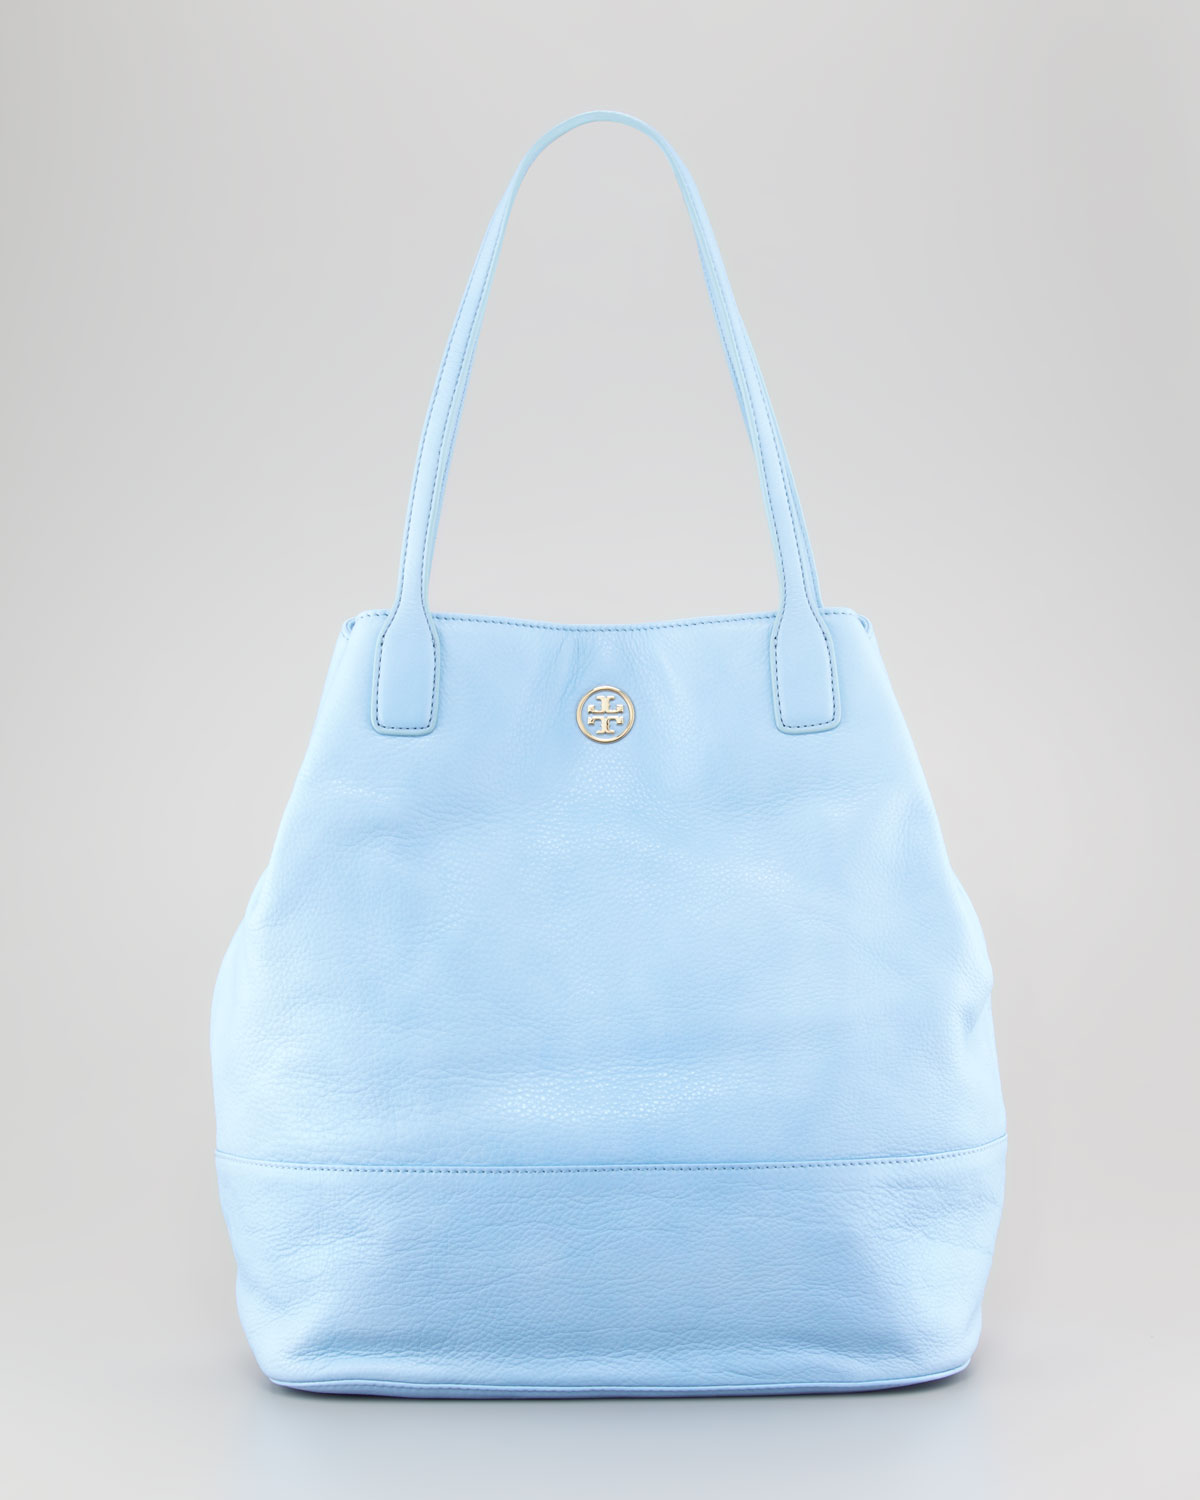 Tory burch Michelle Pebbled Leather Tote Bag Light Blue in Blue | Lyst